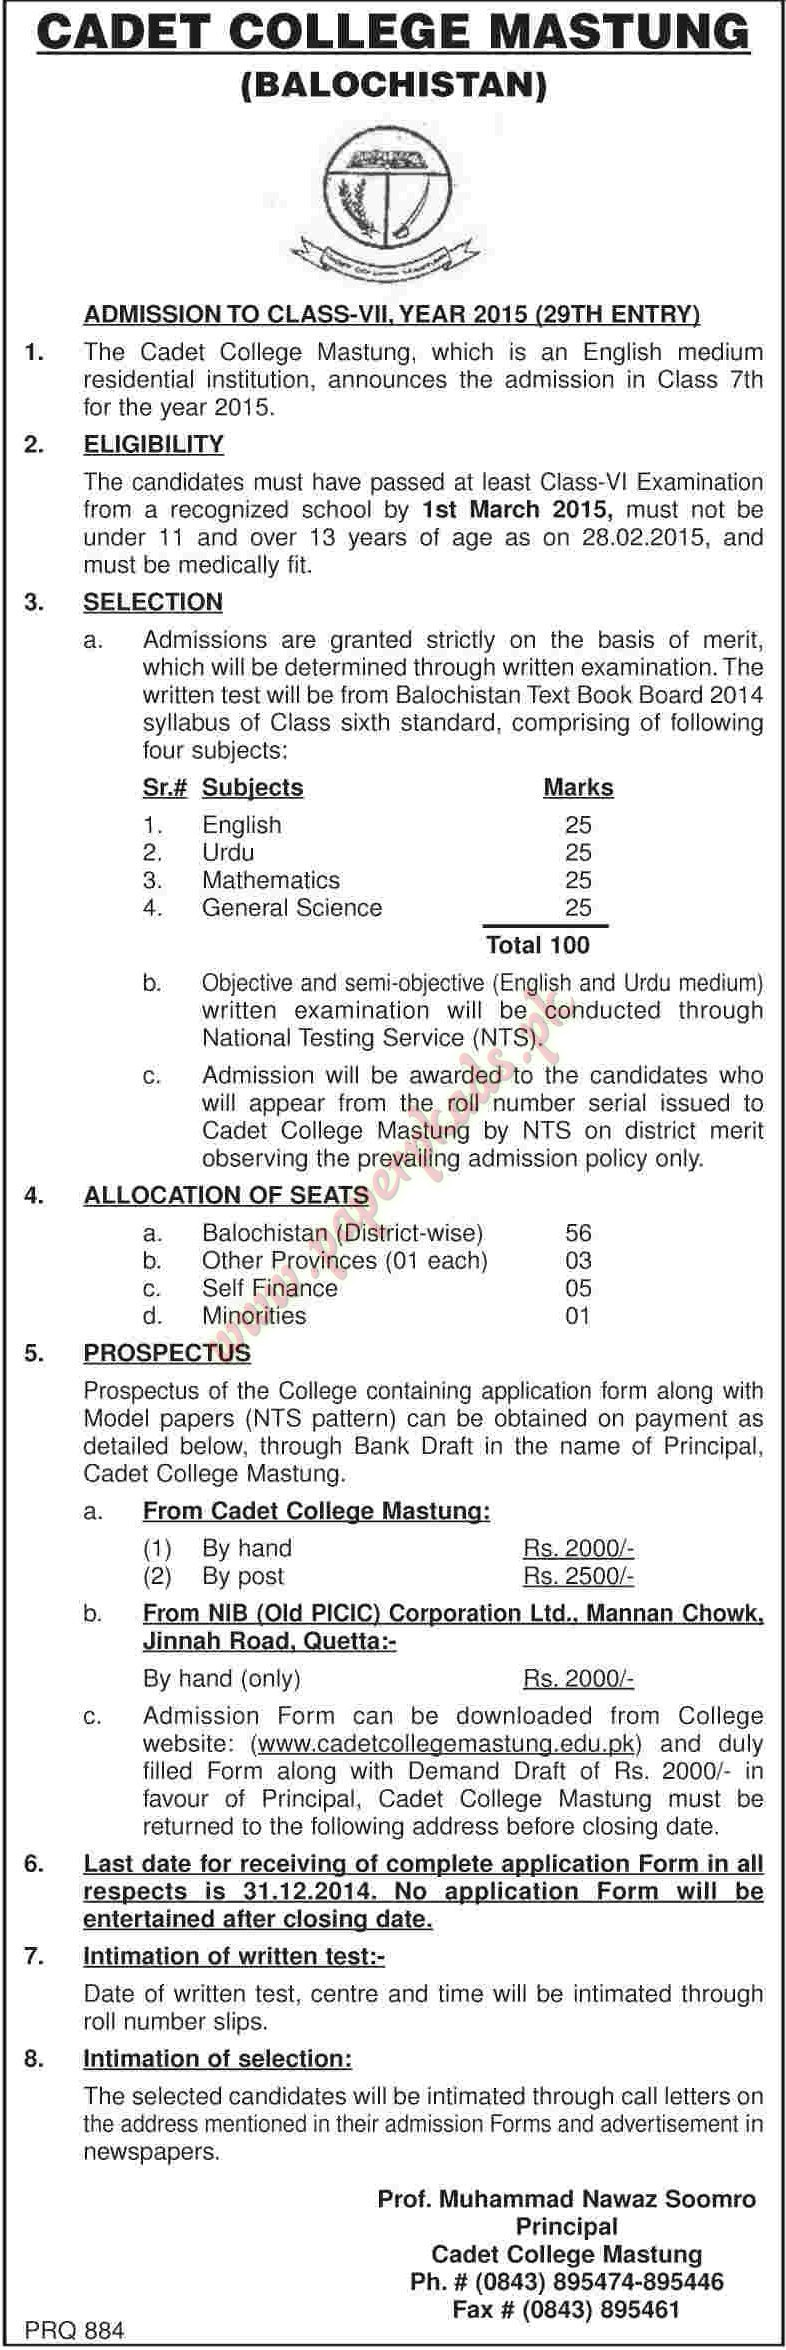 Admissions Open - Cadet College Mastung - Dawn 31 October 2014